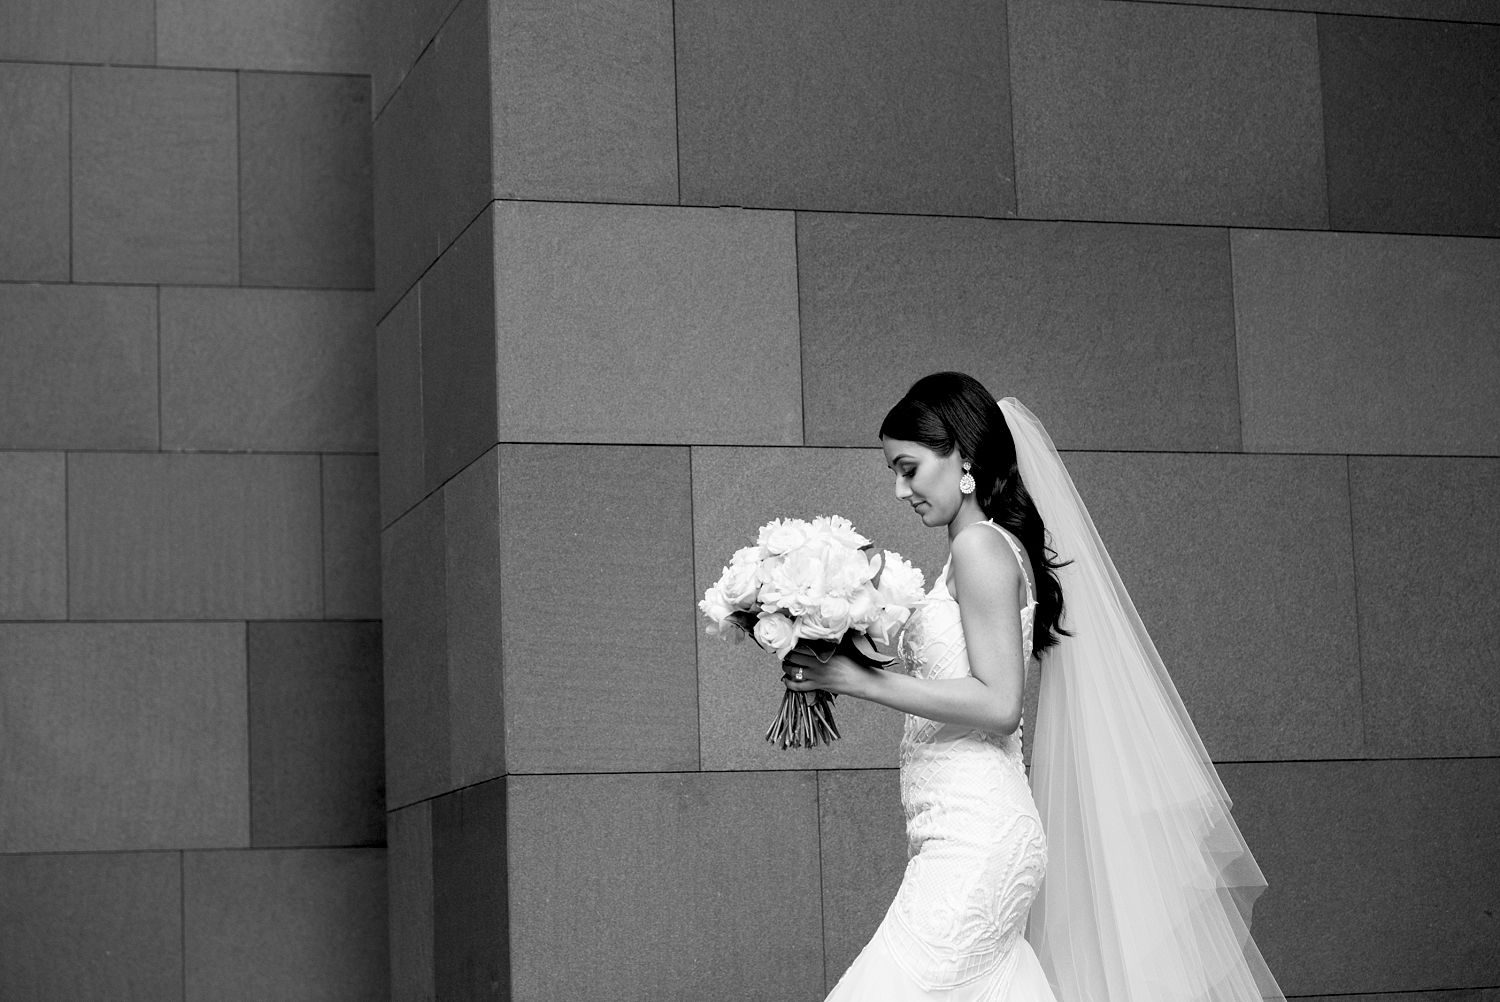 56_treasury buildings wedding perth.jpg